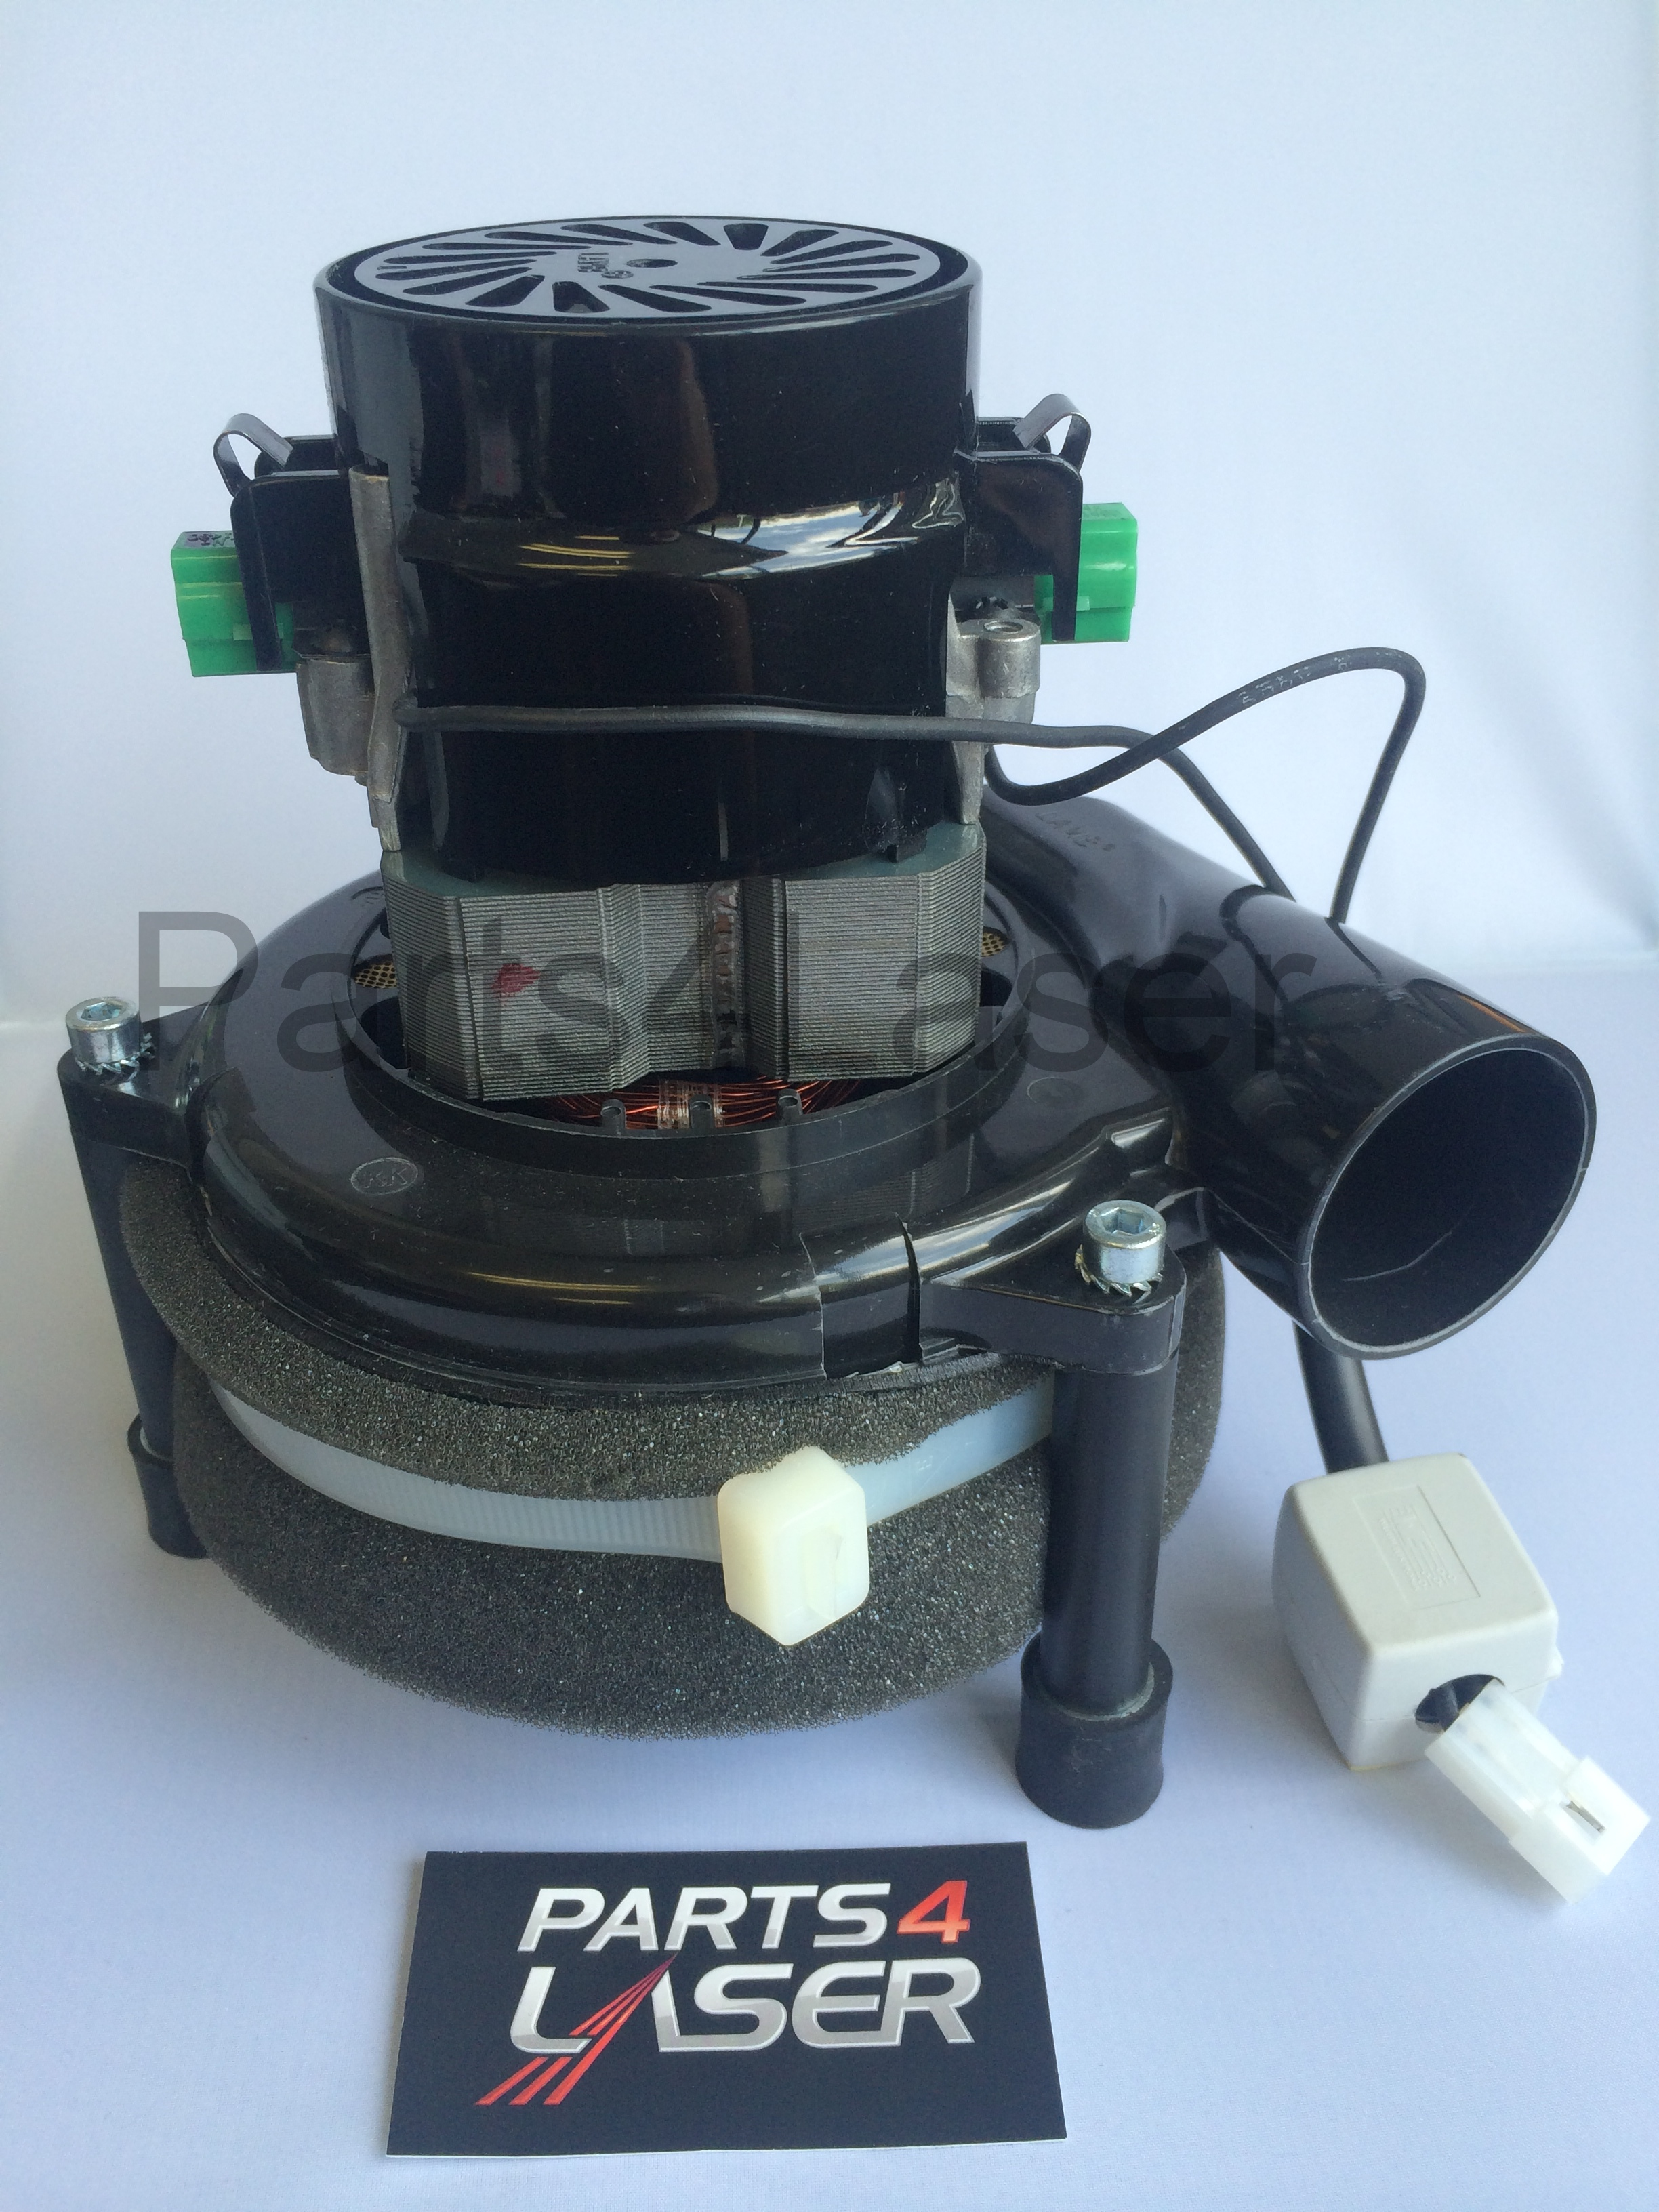 Zimmer Cryo 5 Parts Blower For The Cryo 5 Parts4laser